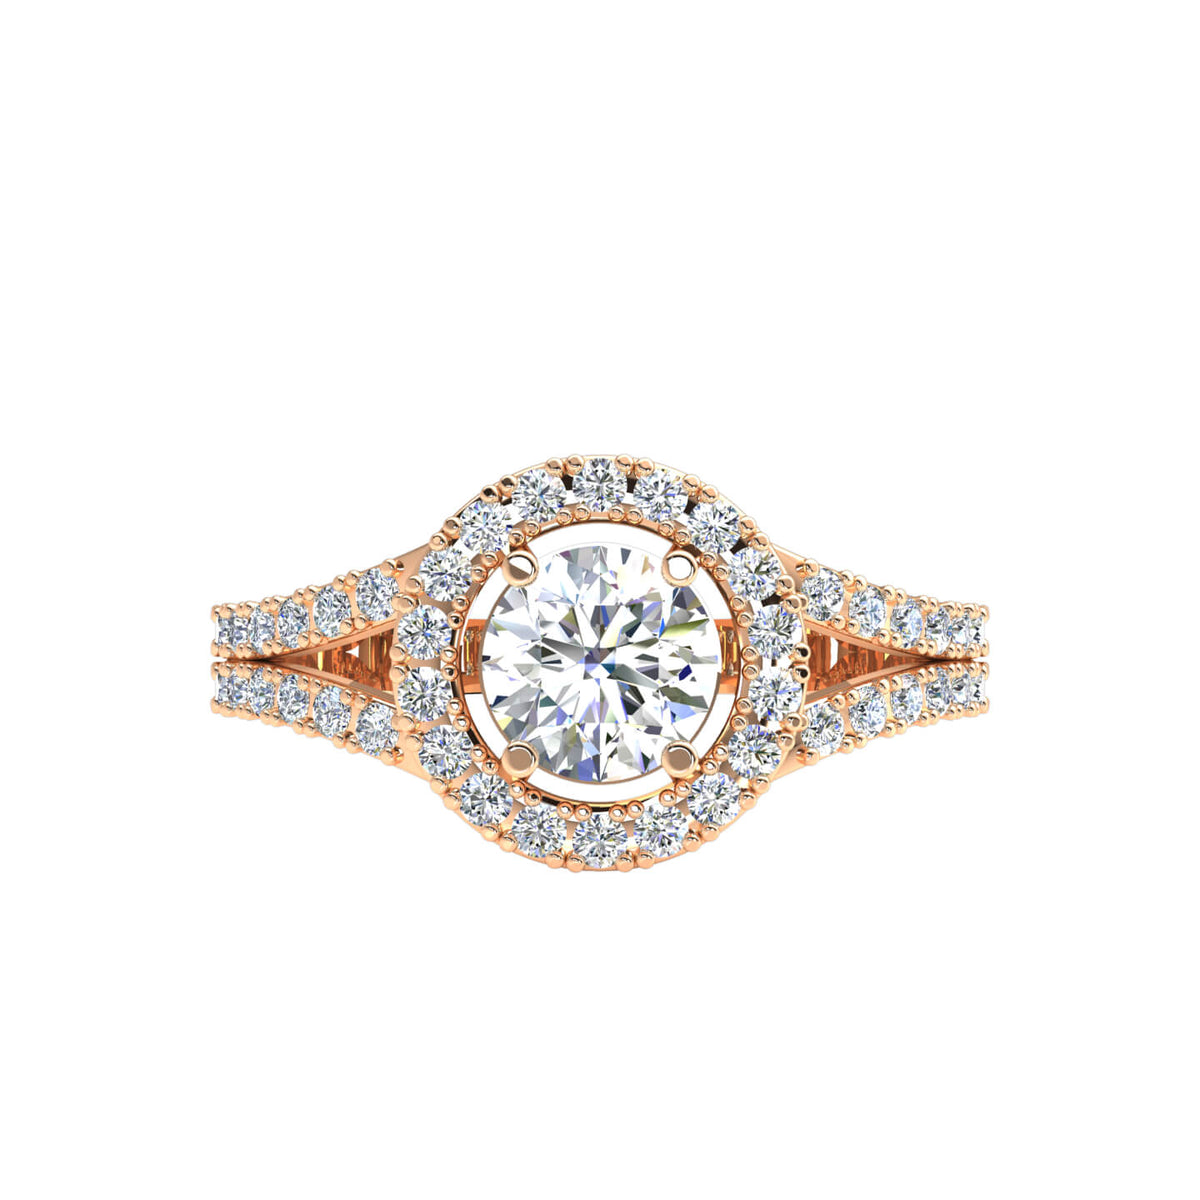 0.90 Ct Women's Round FG VS Diamond Halo Solitaire Engagement Ring 14k Gold